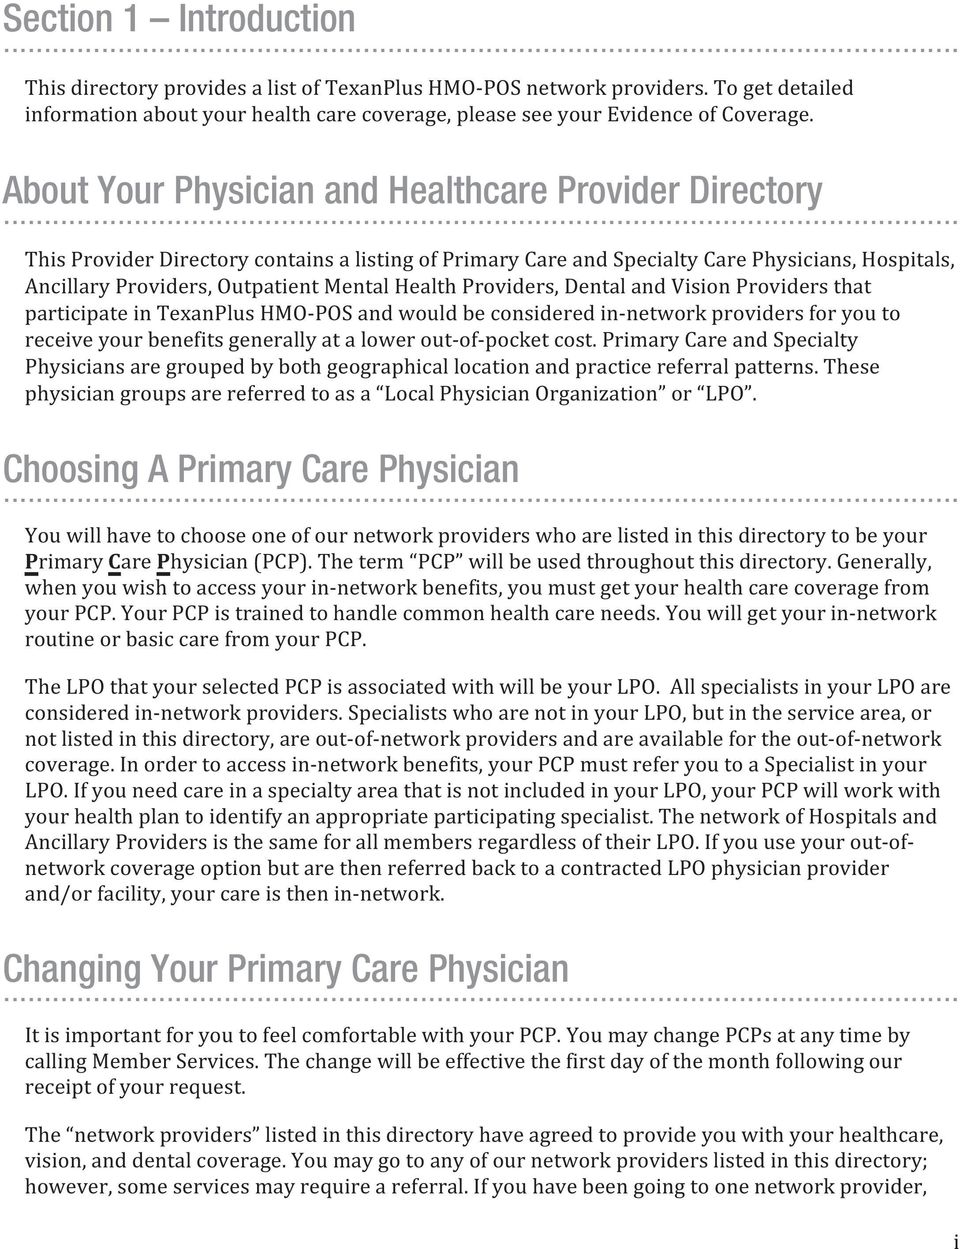 .. This Provider Directory contains a listing of Primary Care and Specialty Care Physicians, Hospitals, Ancillary Providers, Outpatient Mental Health Providers, Dental and Vision Providers that